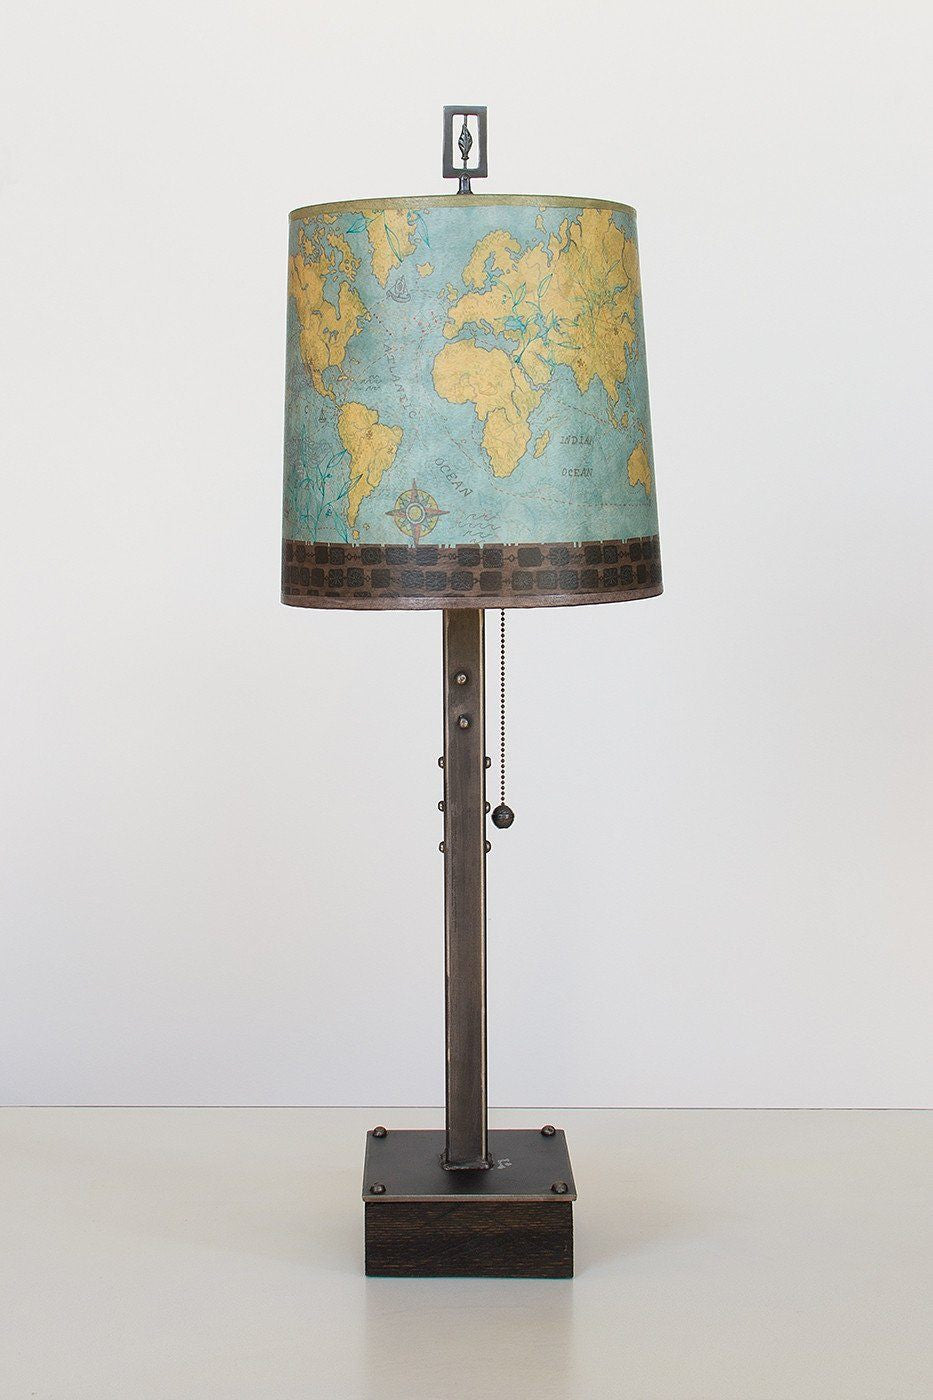 Steel Table Lamp on Wood with Medium Drum Shade in Map